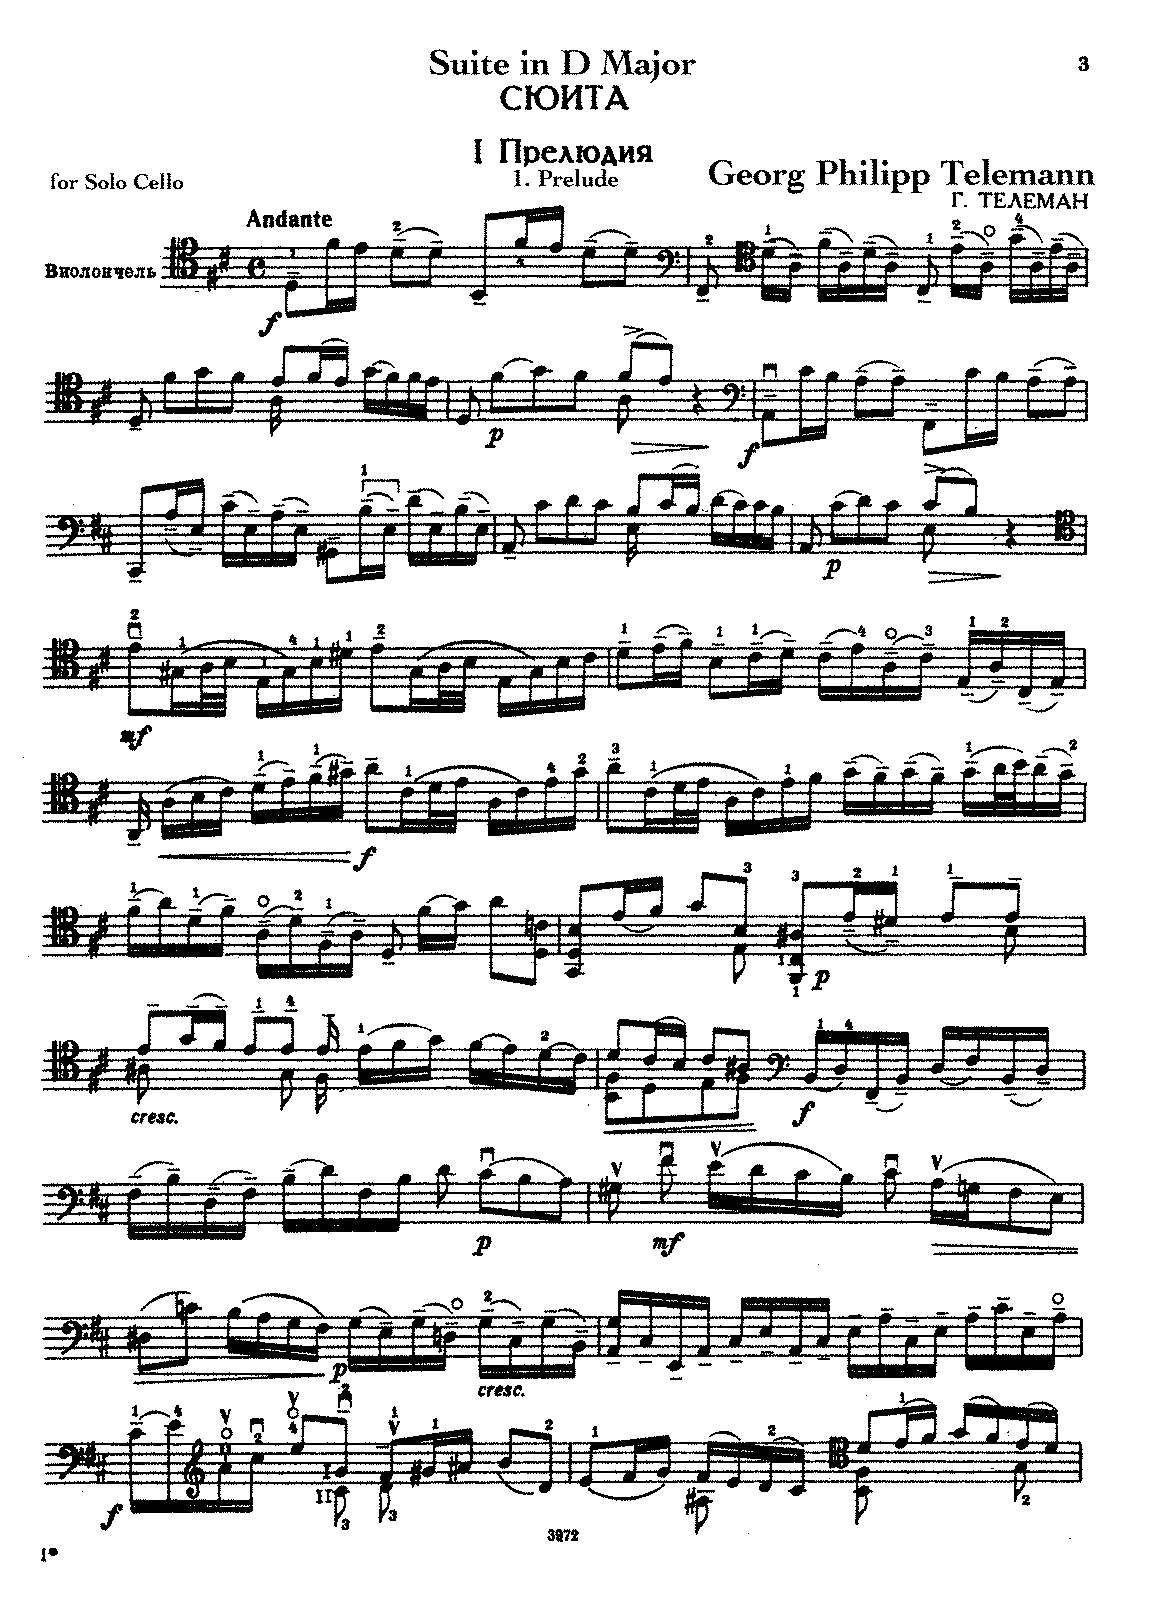 PMLP208503-Telemann - Suite in D Major (RUS) for Cello Solo .pdf